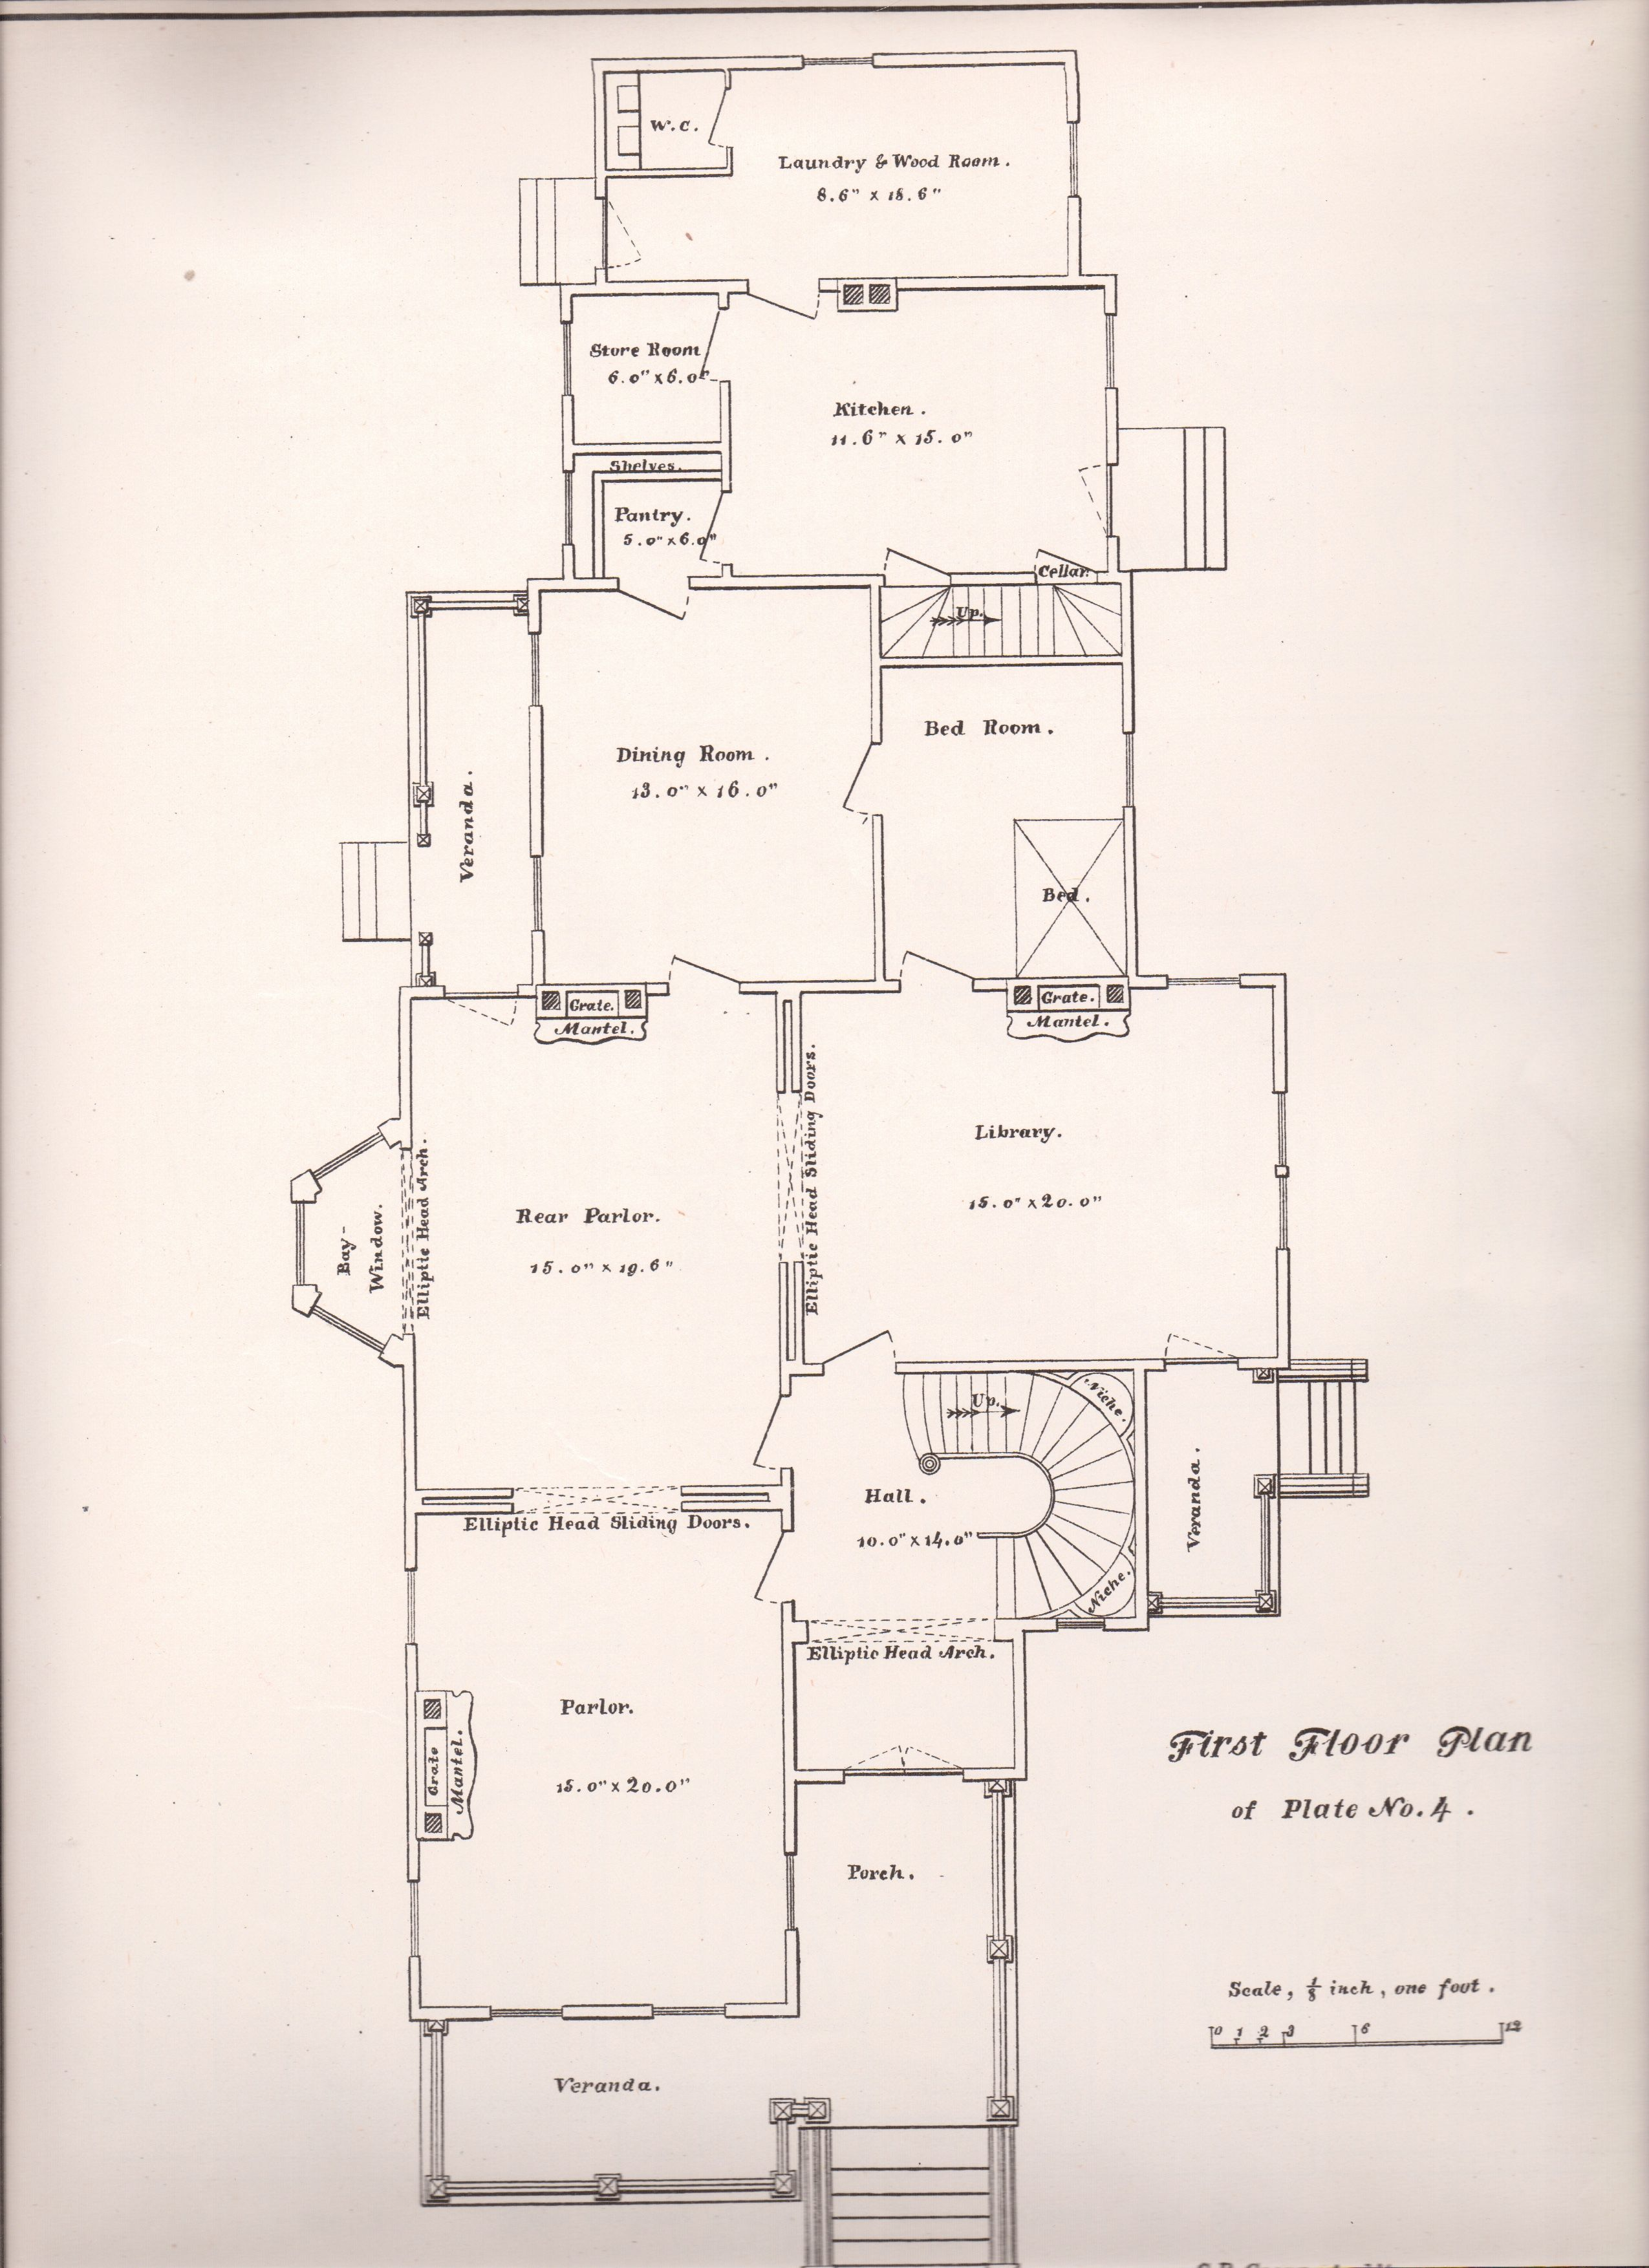 Plate No 5 First Floor Plan Of Plate No 4 G B Croff Architect From Progressive American Arch Floor Plans American Architecture Victorian Architecture